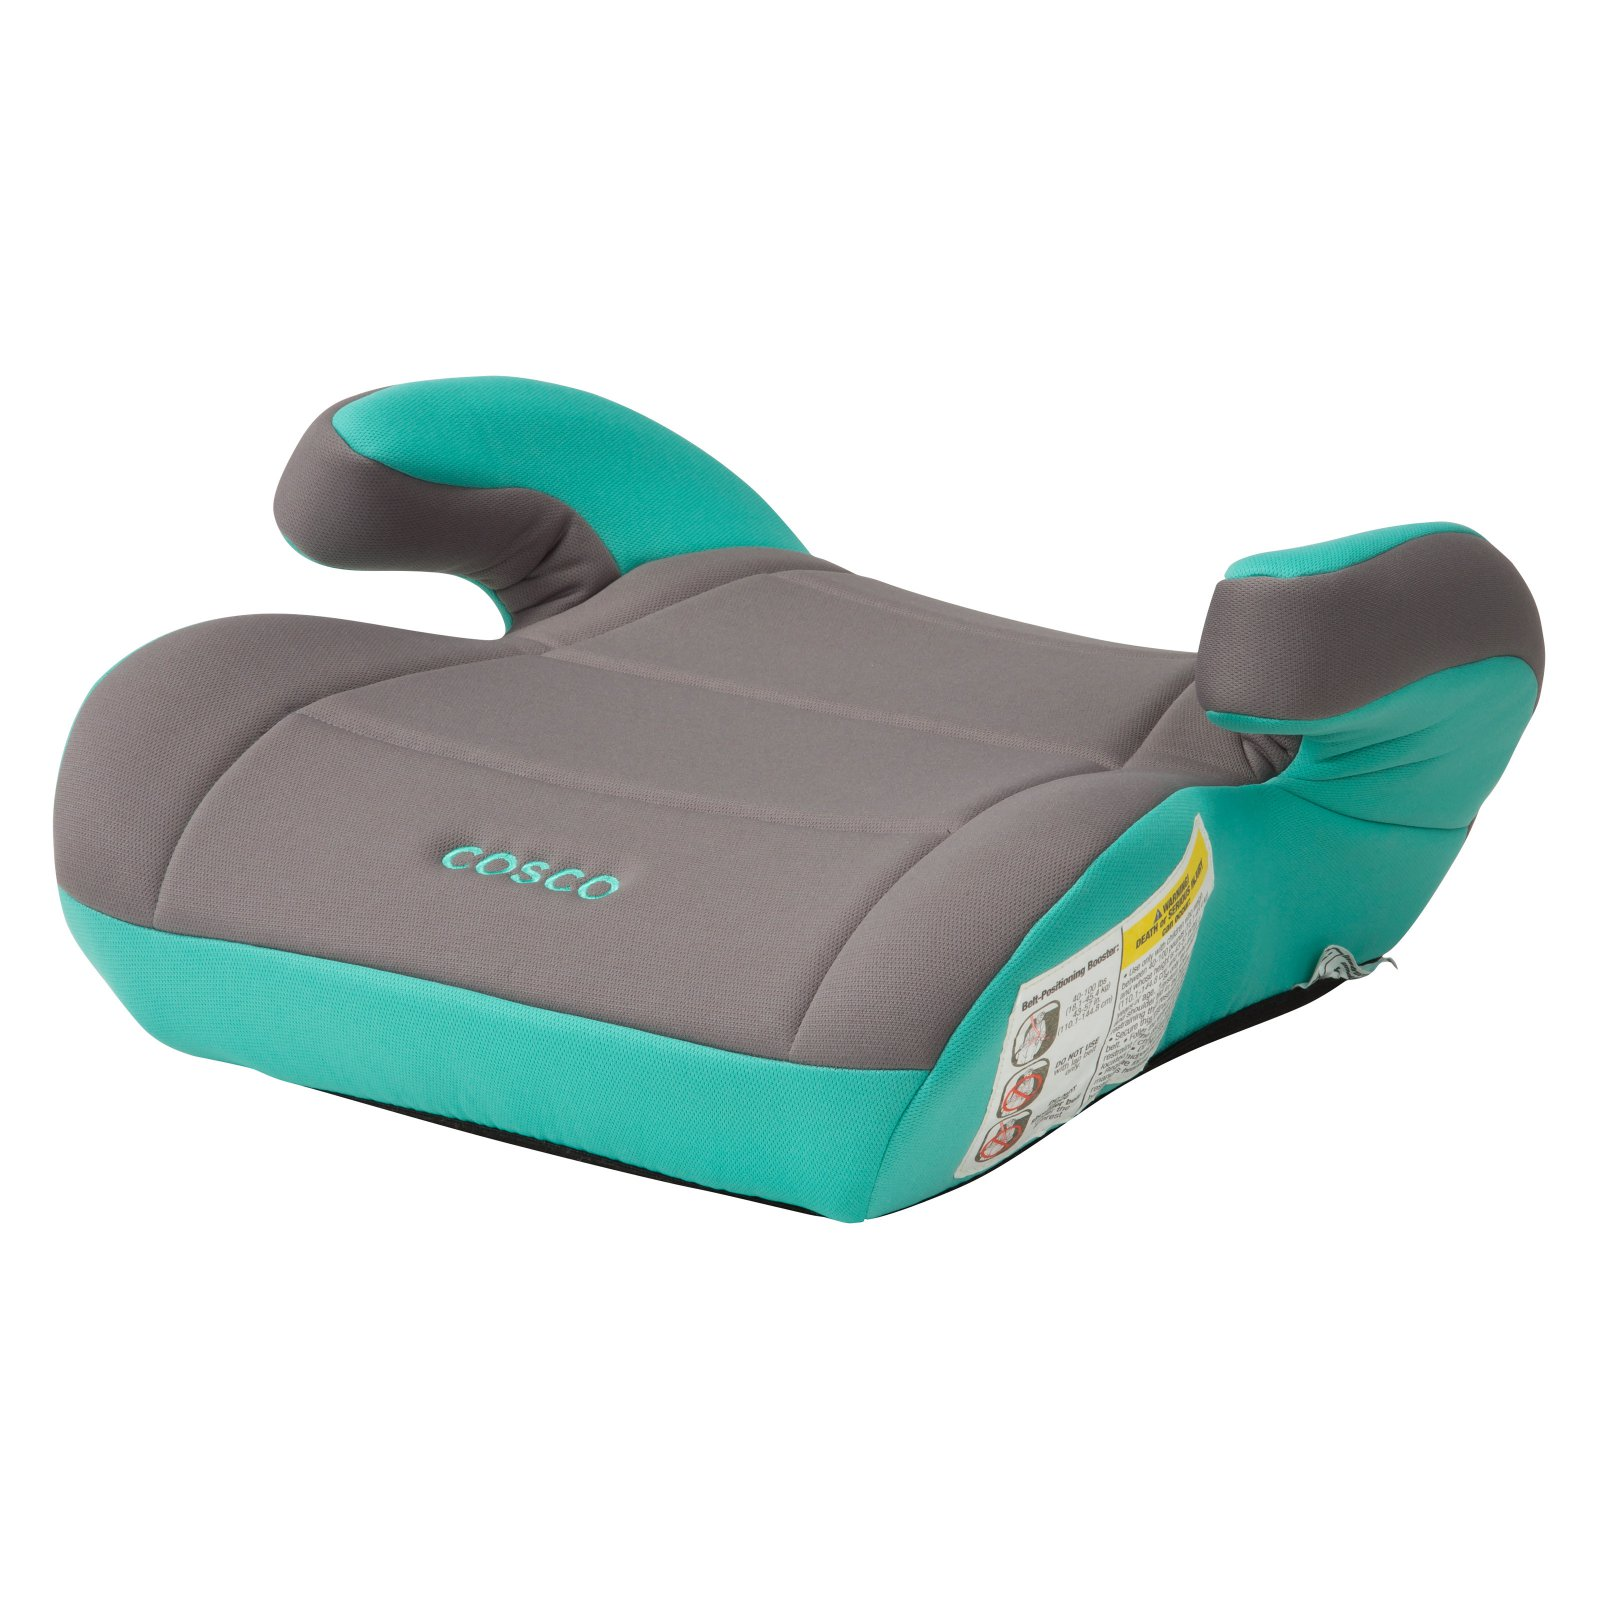 Cosco Topside Booster Car Seat - Grape